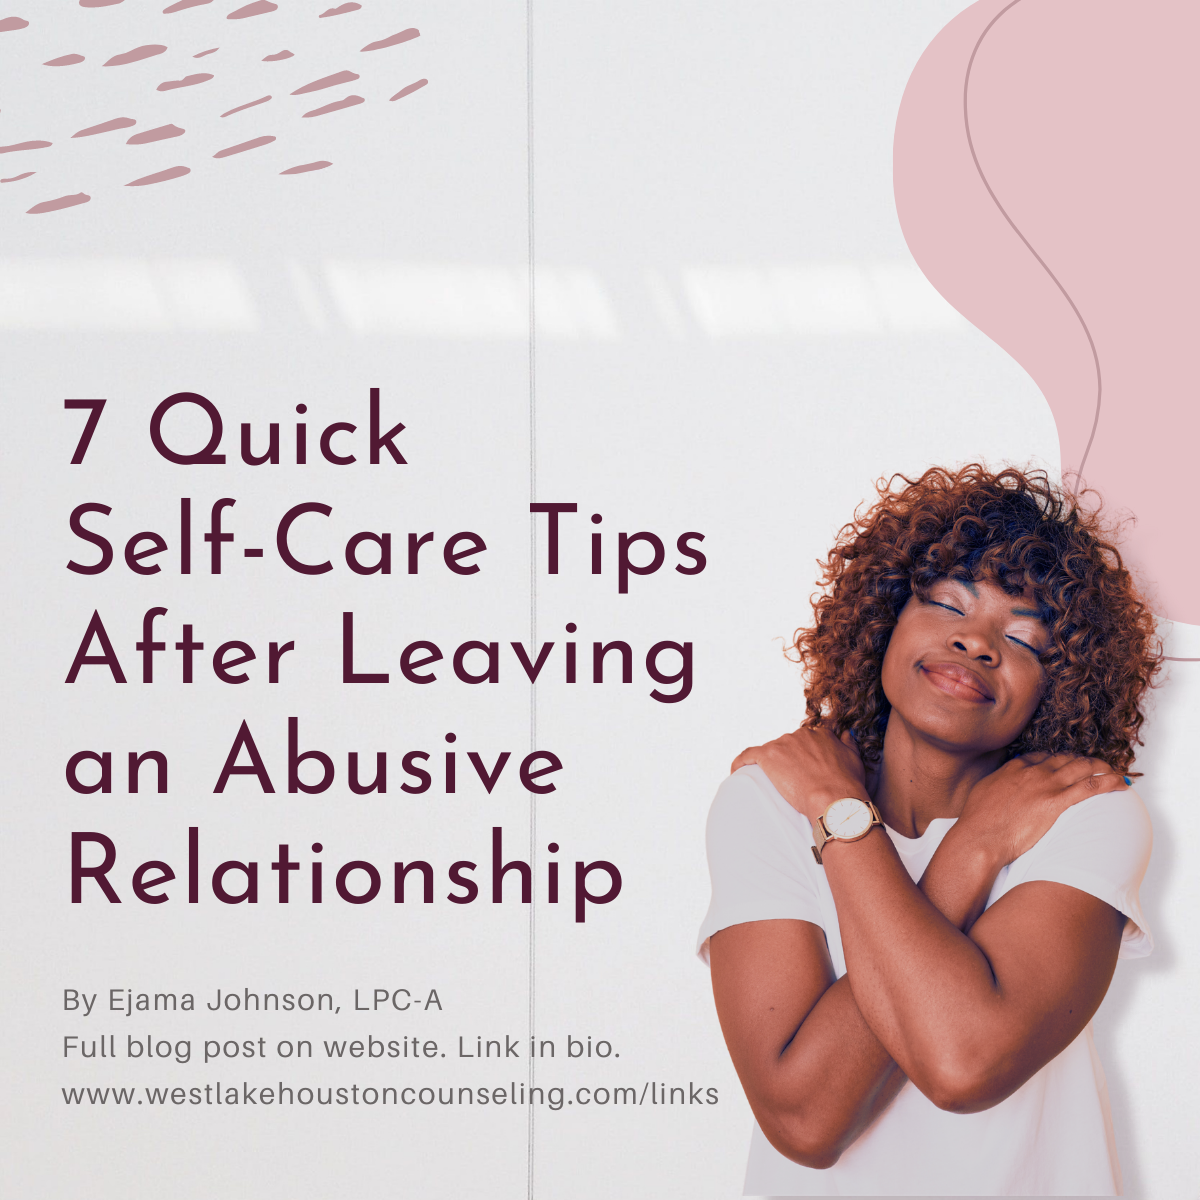 Recovery from abuse-related trauma